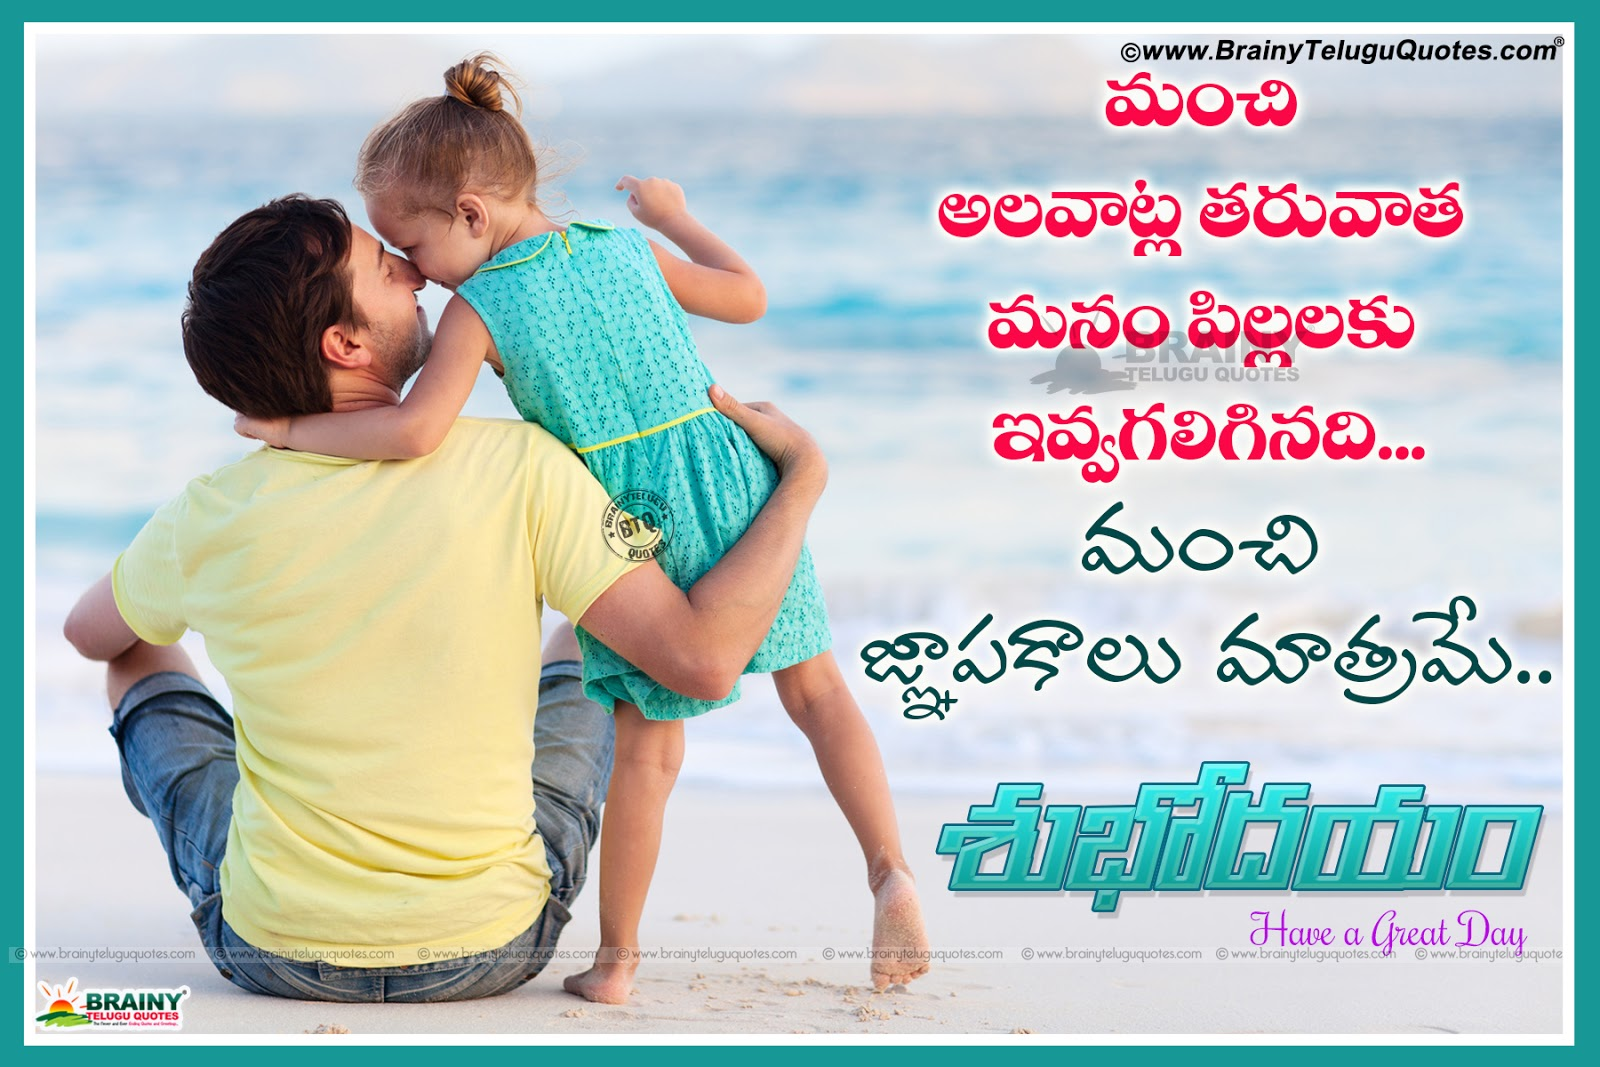 best telugu good morning quotes about parents ammananna kavitalu suktulu on mother in telugu amma telugu kavithalu essay about mother in telugu